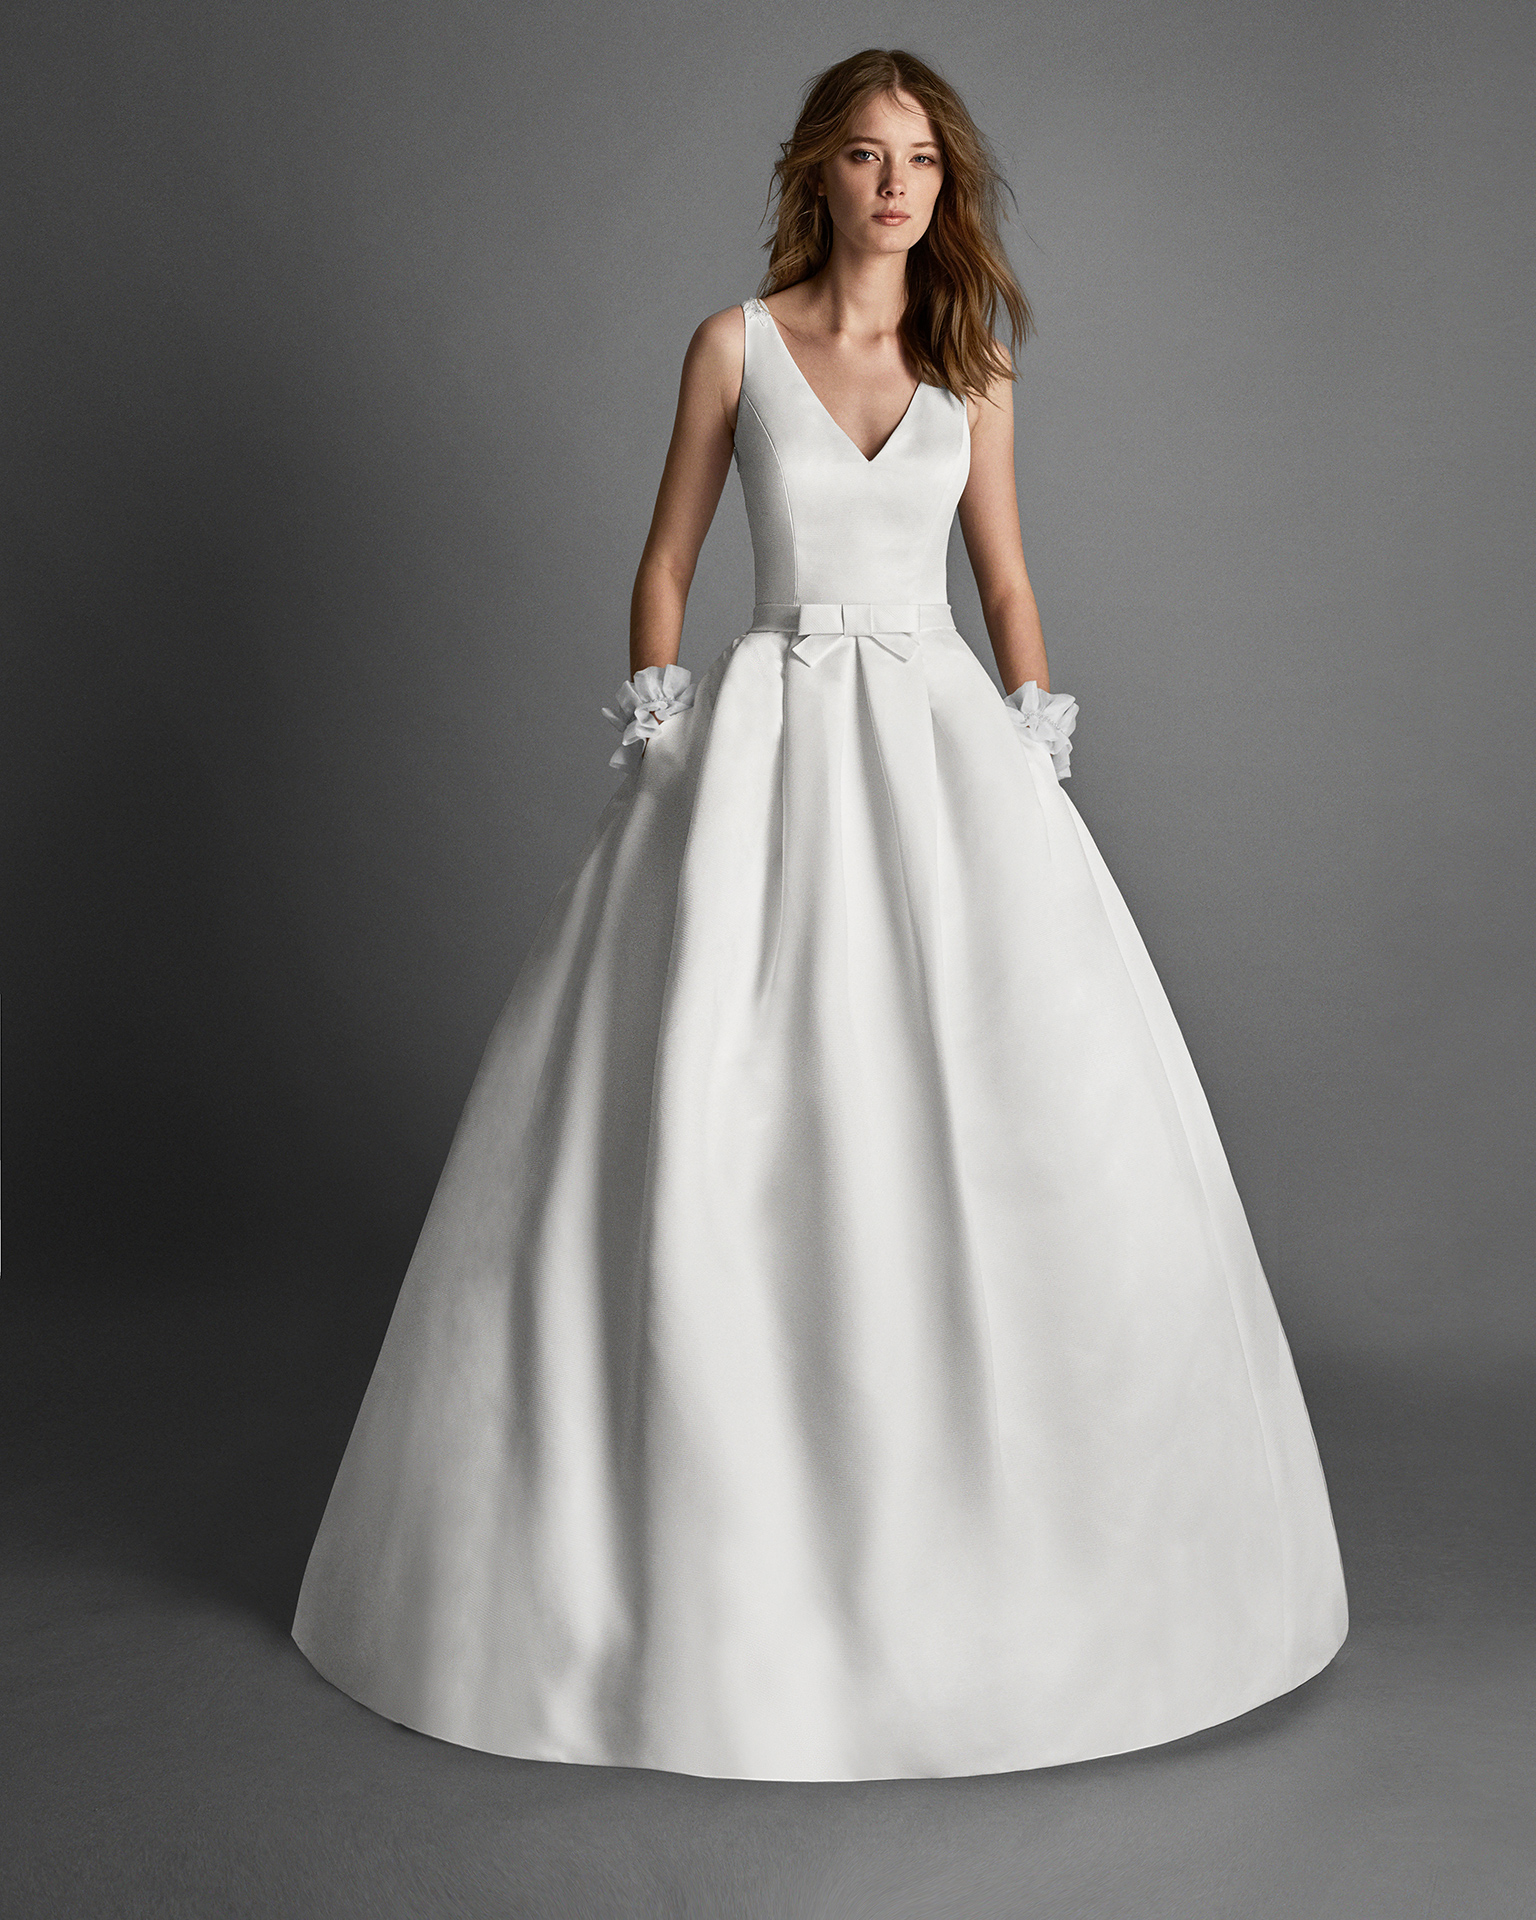 Classic-style Ottoman wedding dress with pockets and beaded embroidery back, in natural.